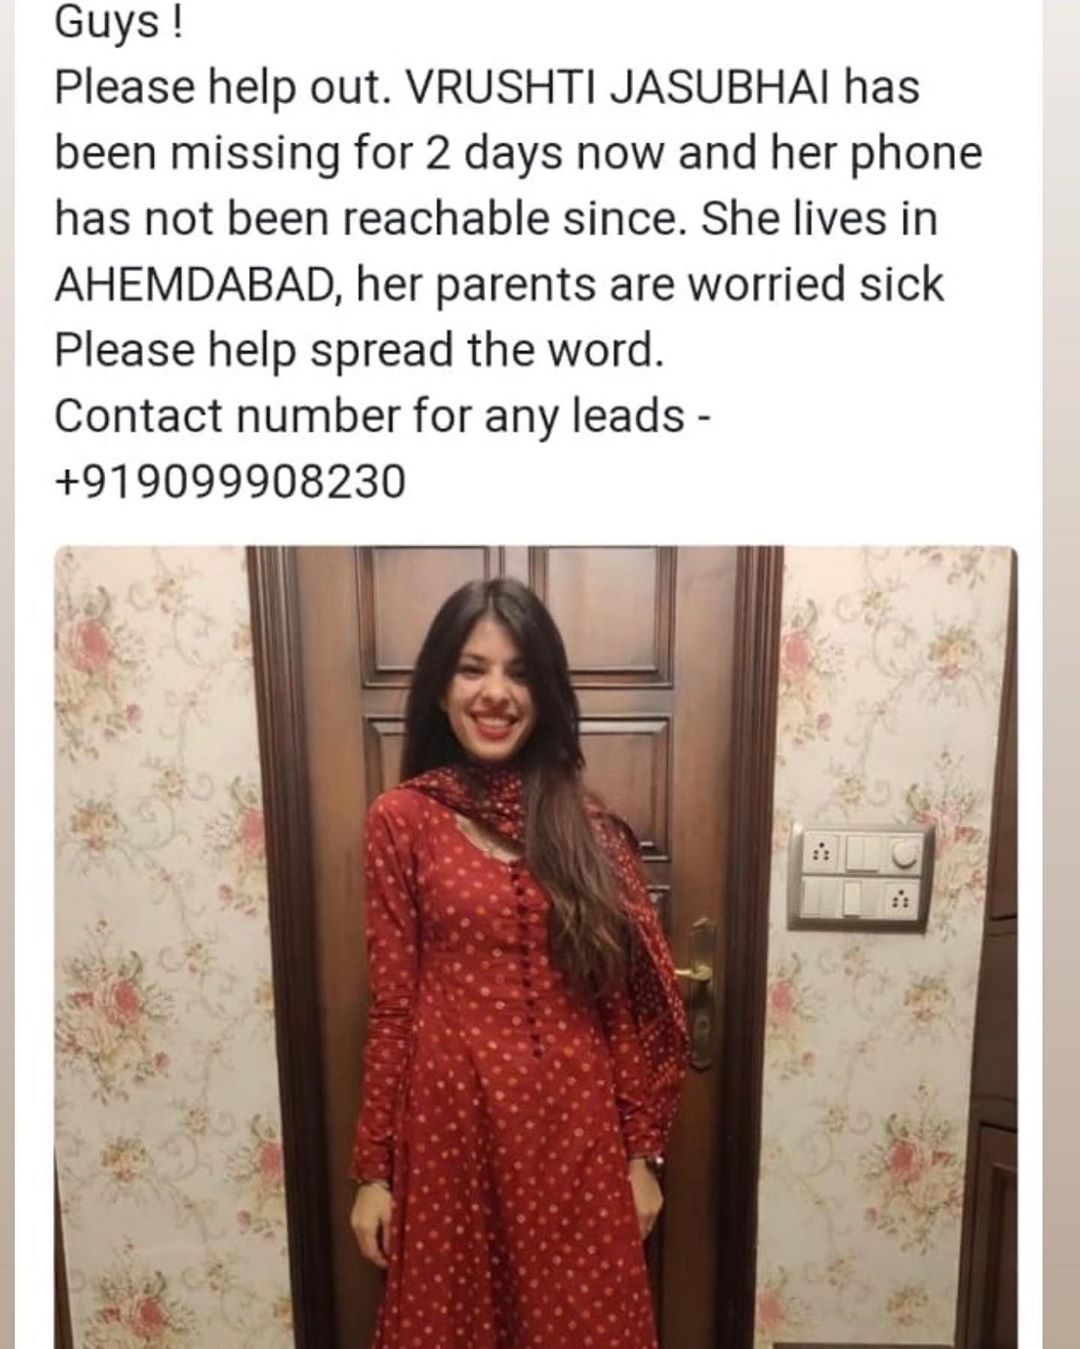 Help their families find these two friends vrushti n Shivam. They have been missing for 3 days n their families are very worried. The contact details for the same are 9099908230